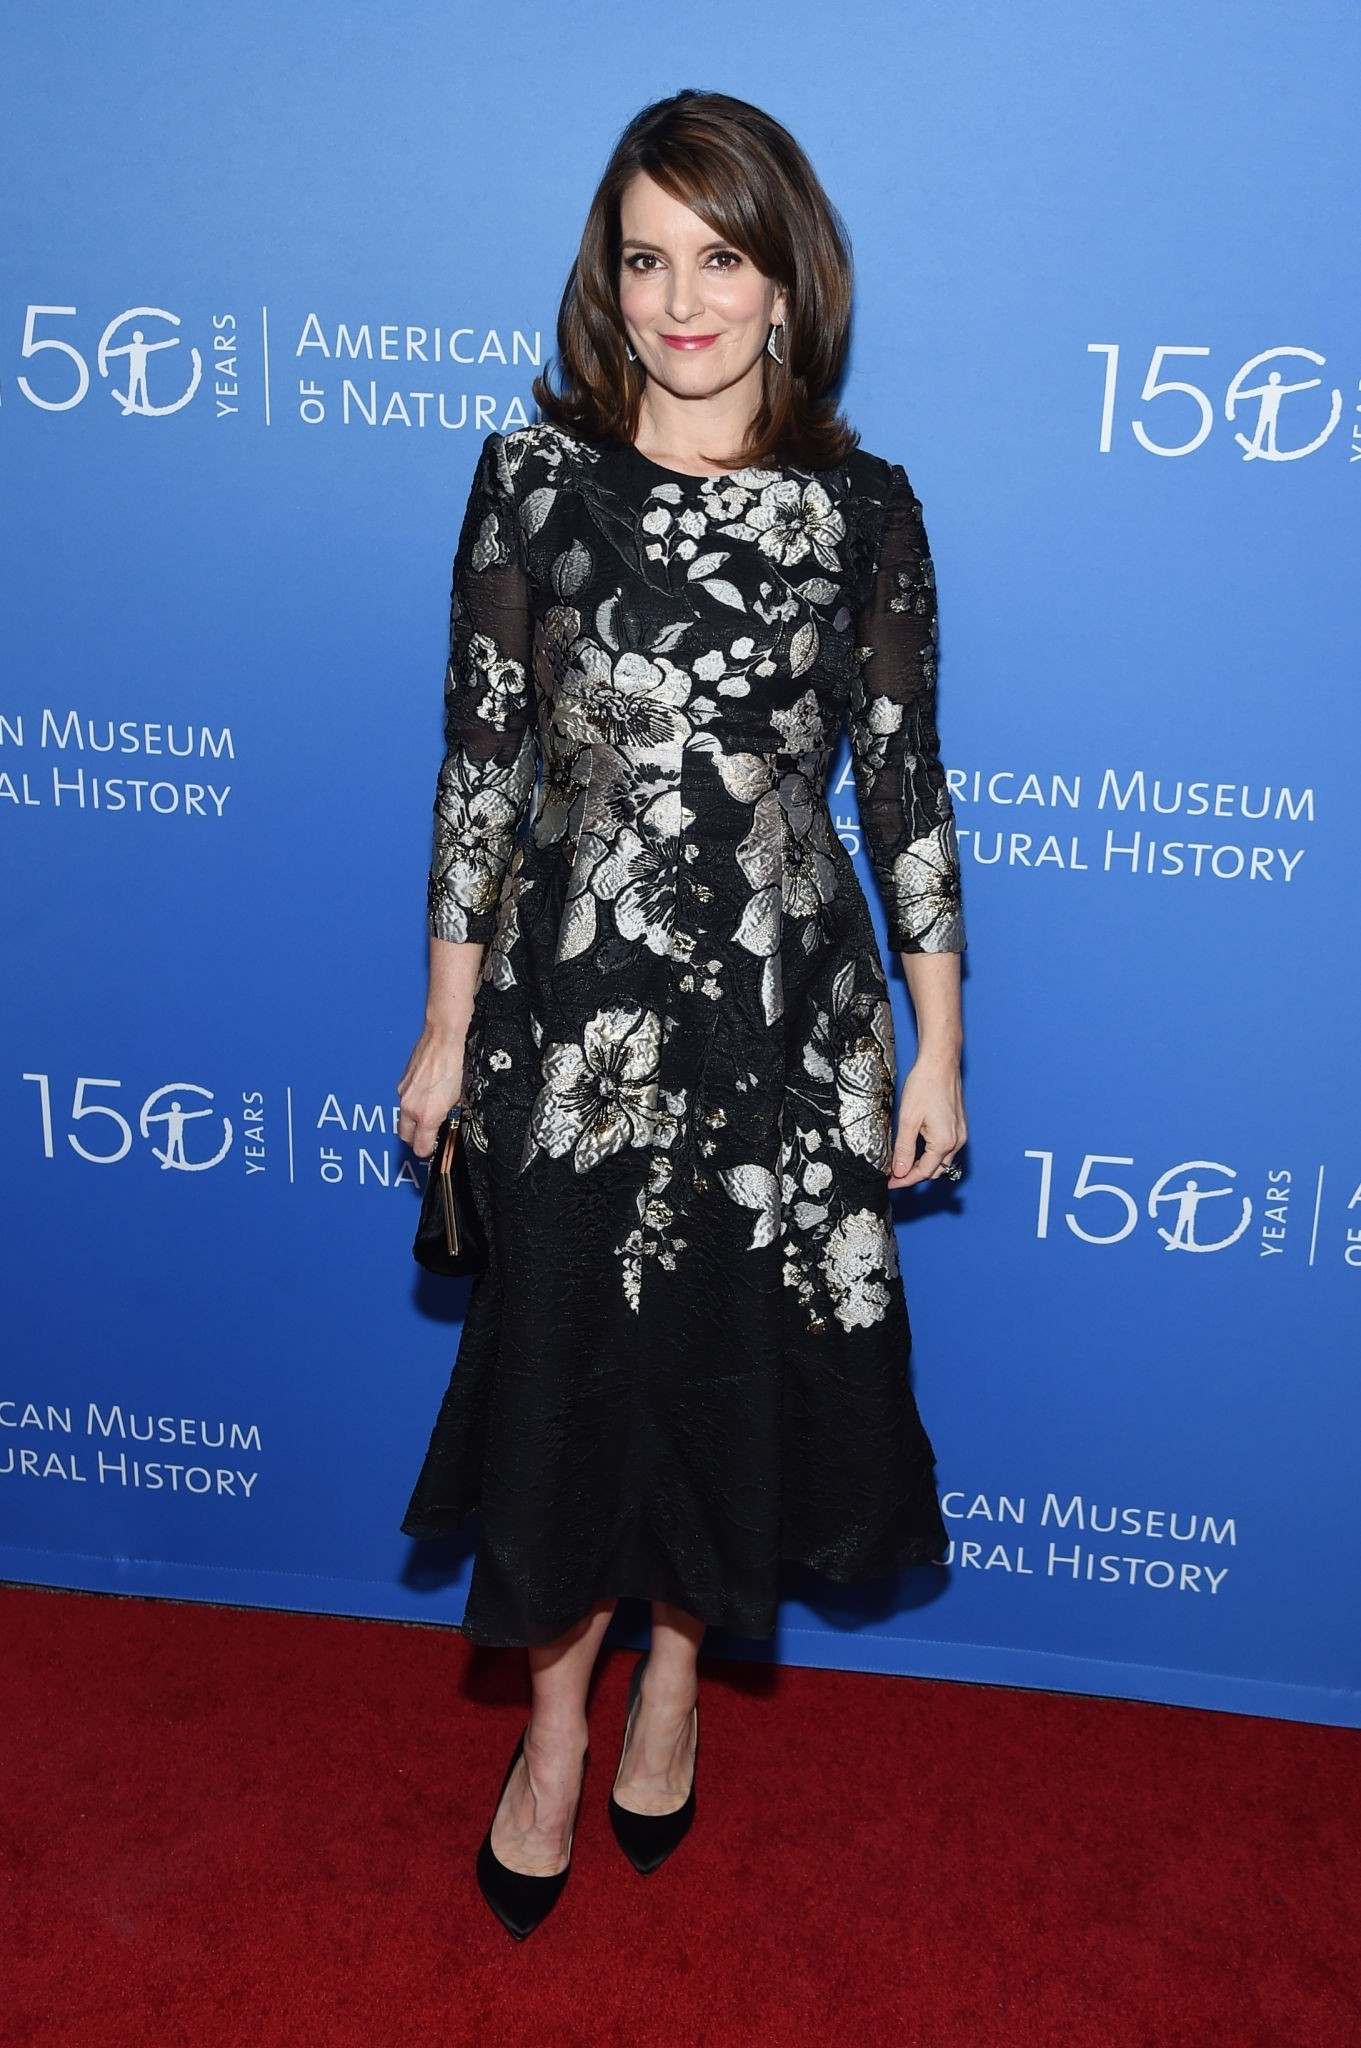 tina-fey-in-lela-rose-2019-american-museum-of-natural-history-gala